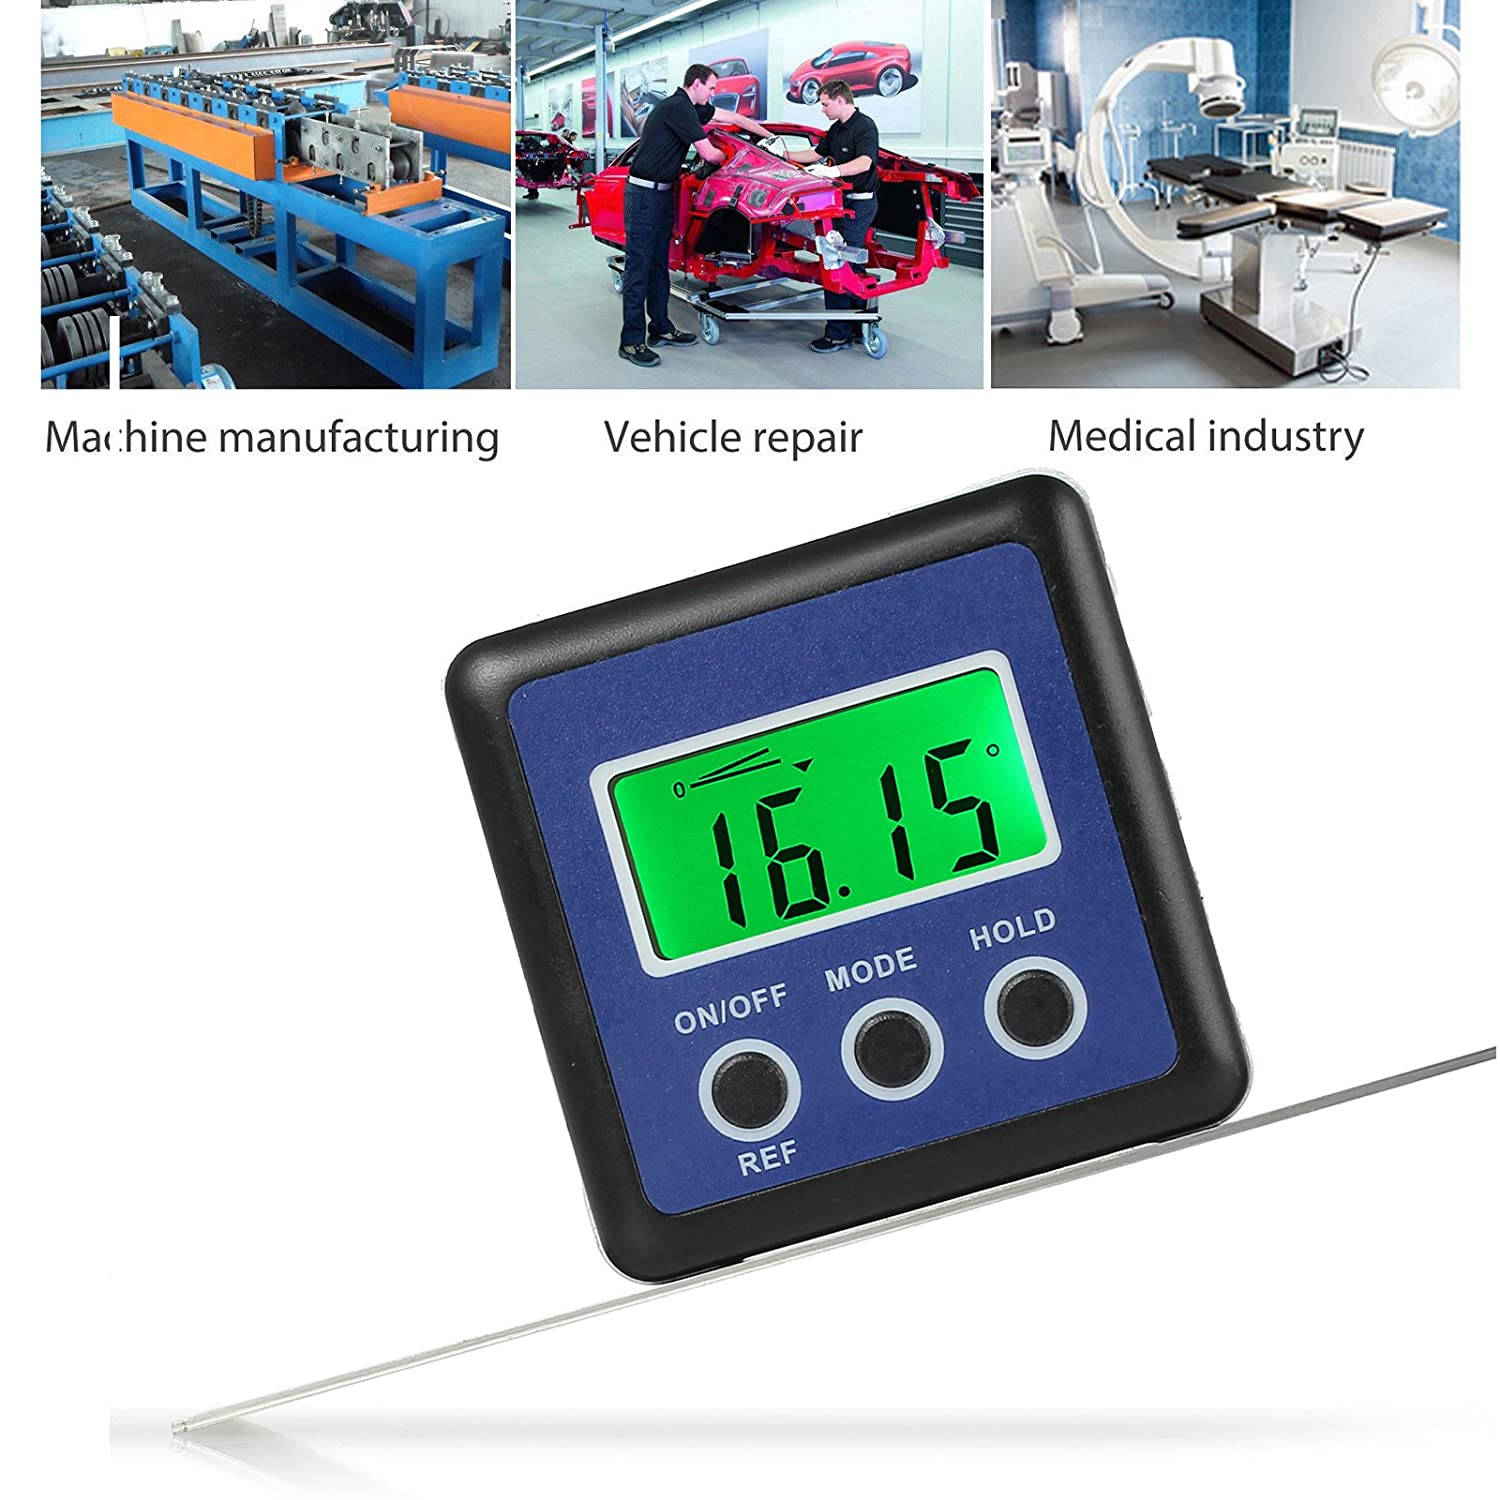 AUTOUTLET Digital Angle Level Gauge Protractor Inclinometer Angle Finder Bevel Box Magnetic Base 0-360° 4 Units °,%, IN/FT, mm/m Pitch Helicopter, Bevel Angle Miter Saw, Repair etc